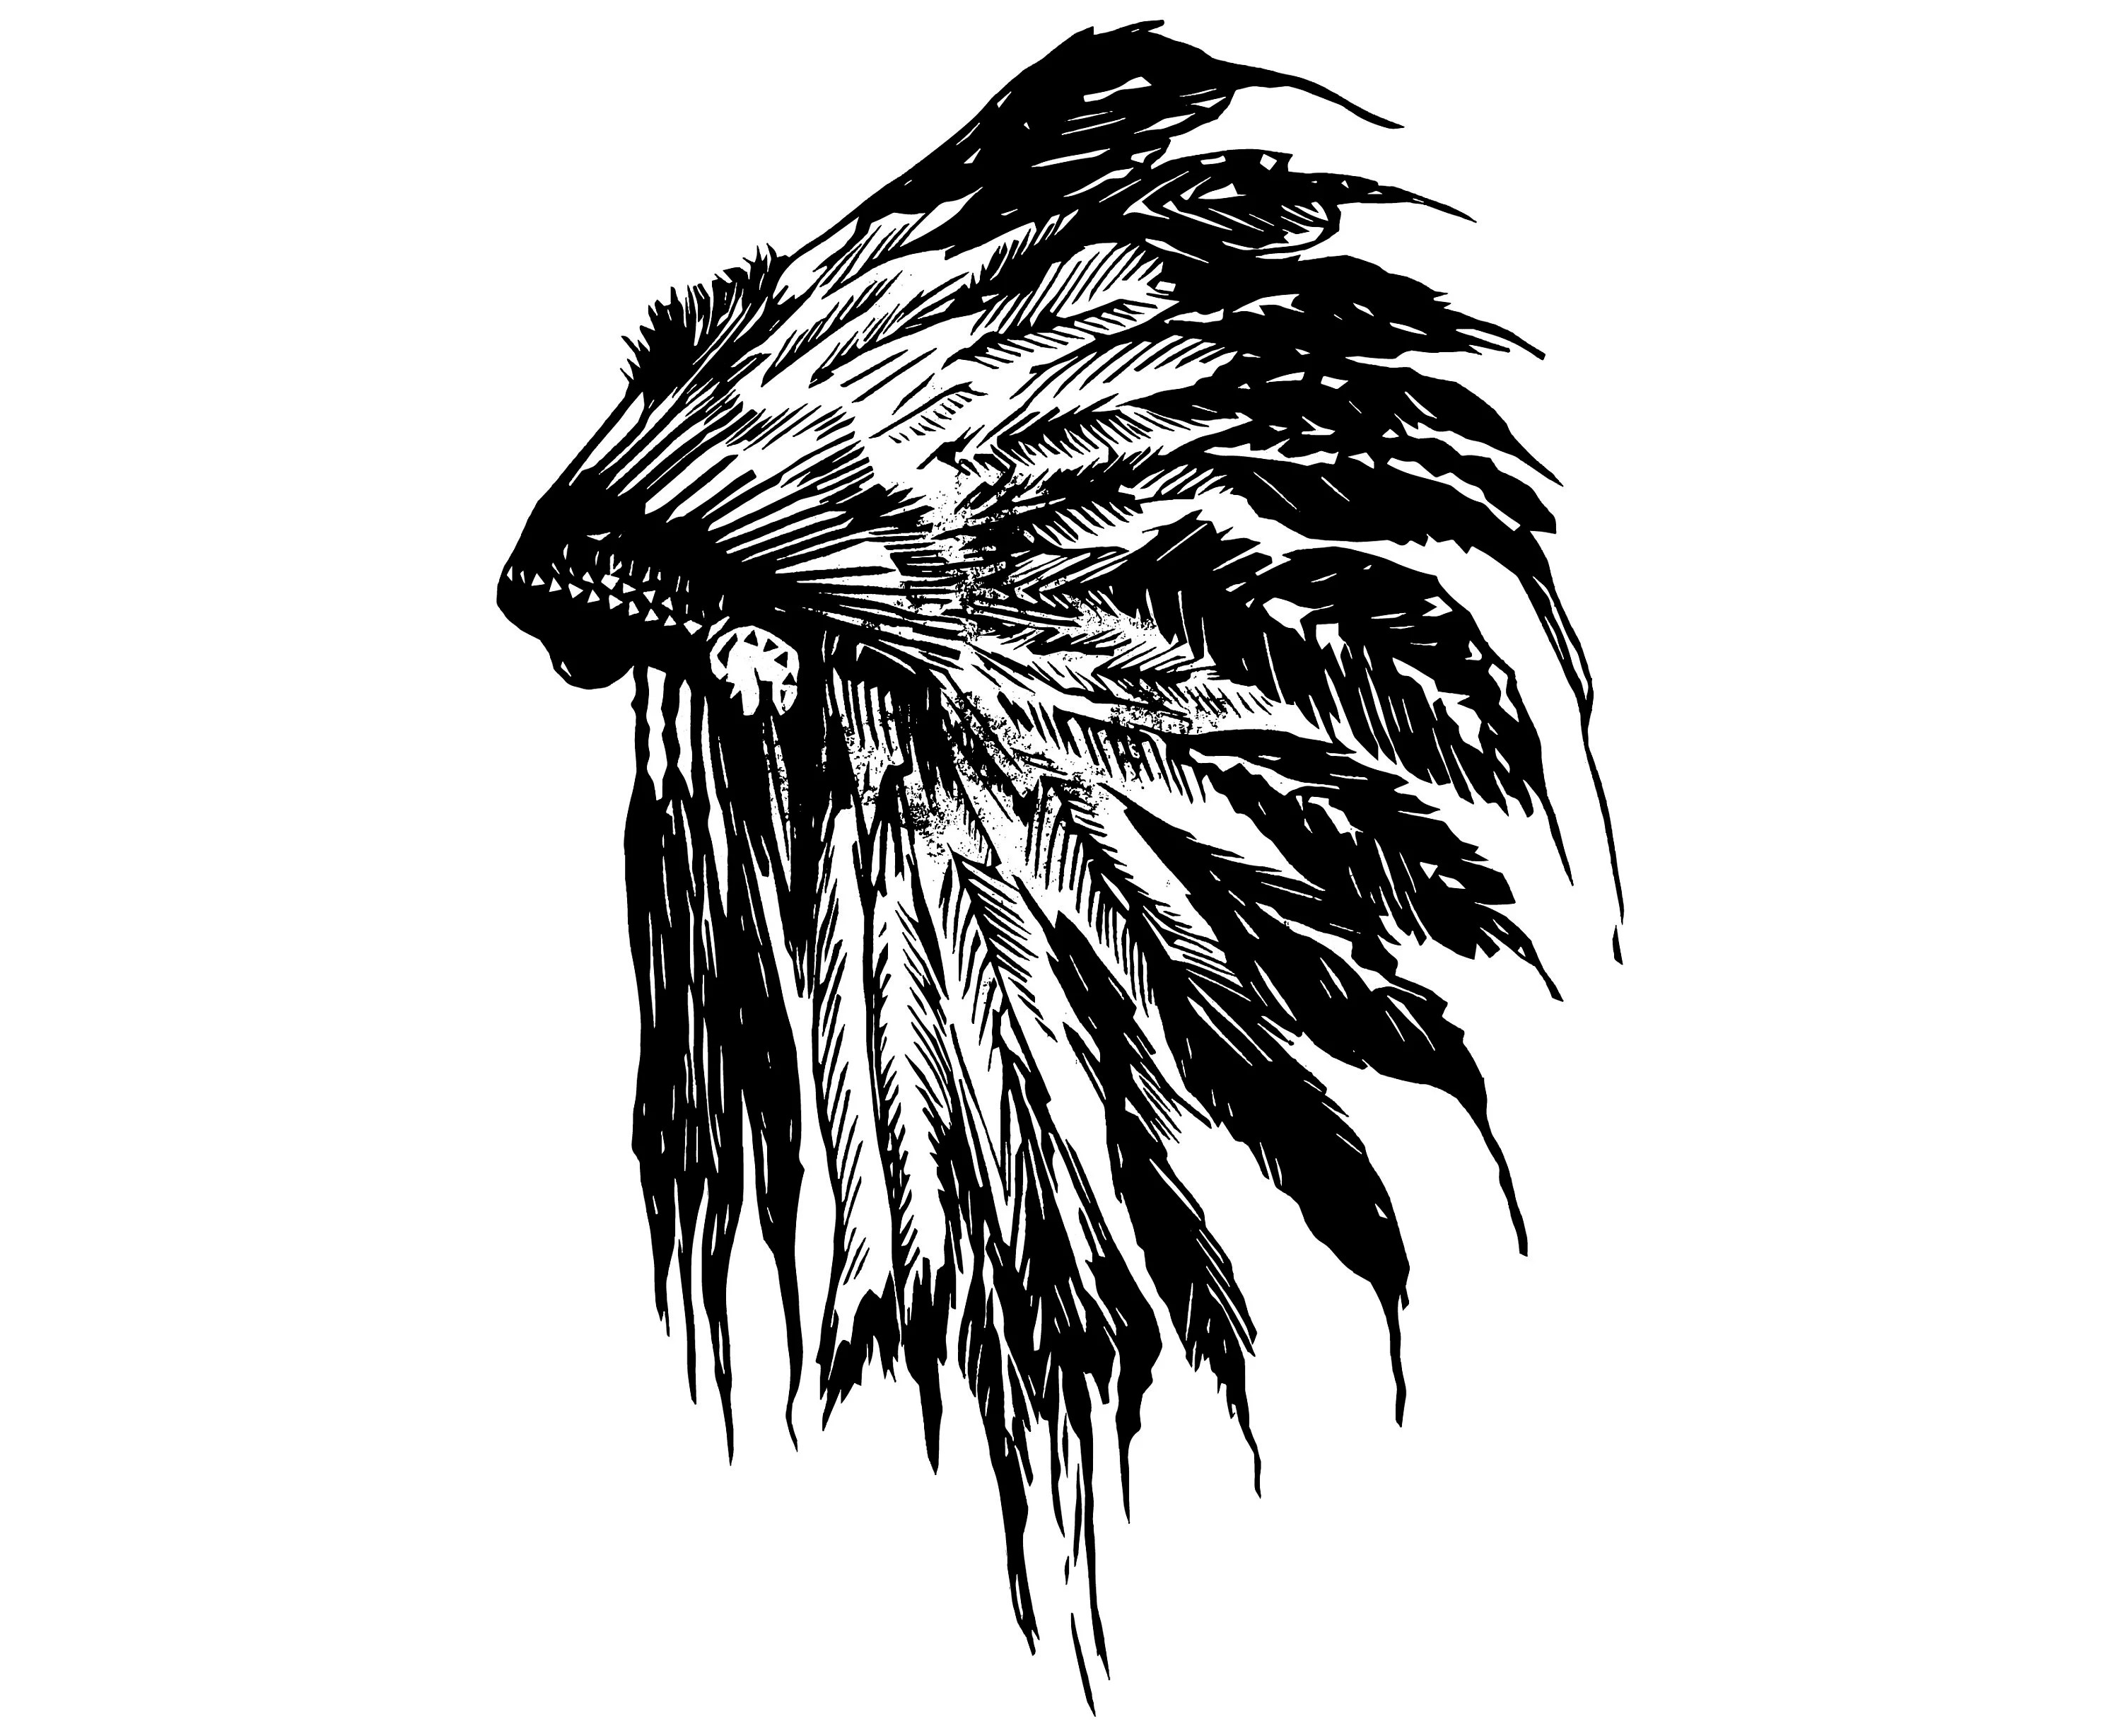 Indian Headdress Feather Native Chief Grunge Hand Drawn